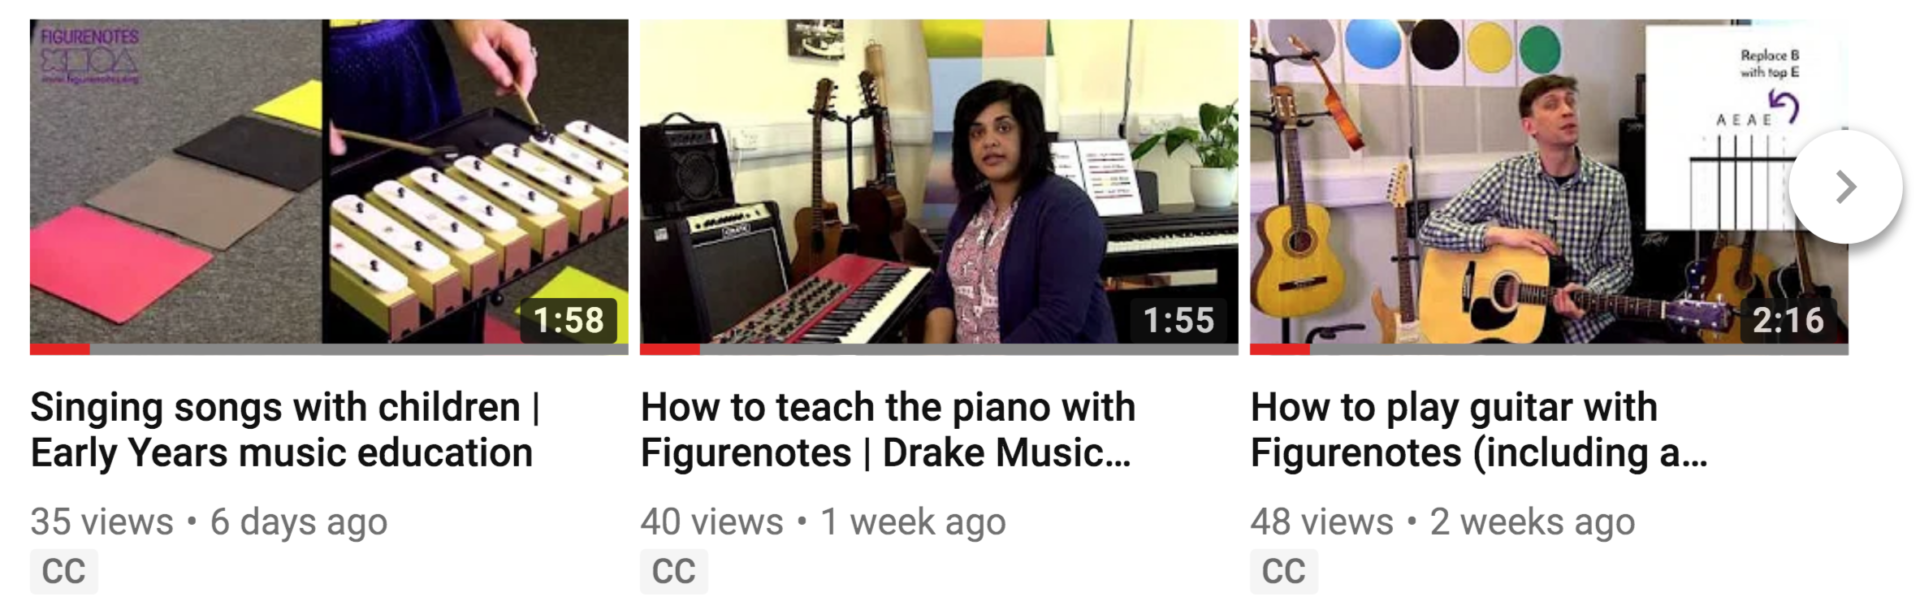 YouTube thumbnails for 3 videos - chime bars, a woman at a piano, and a man holding a guitar.